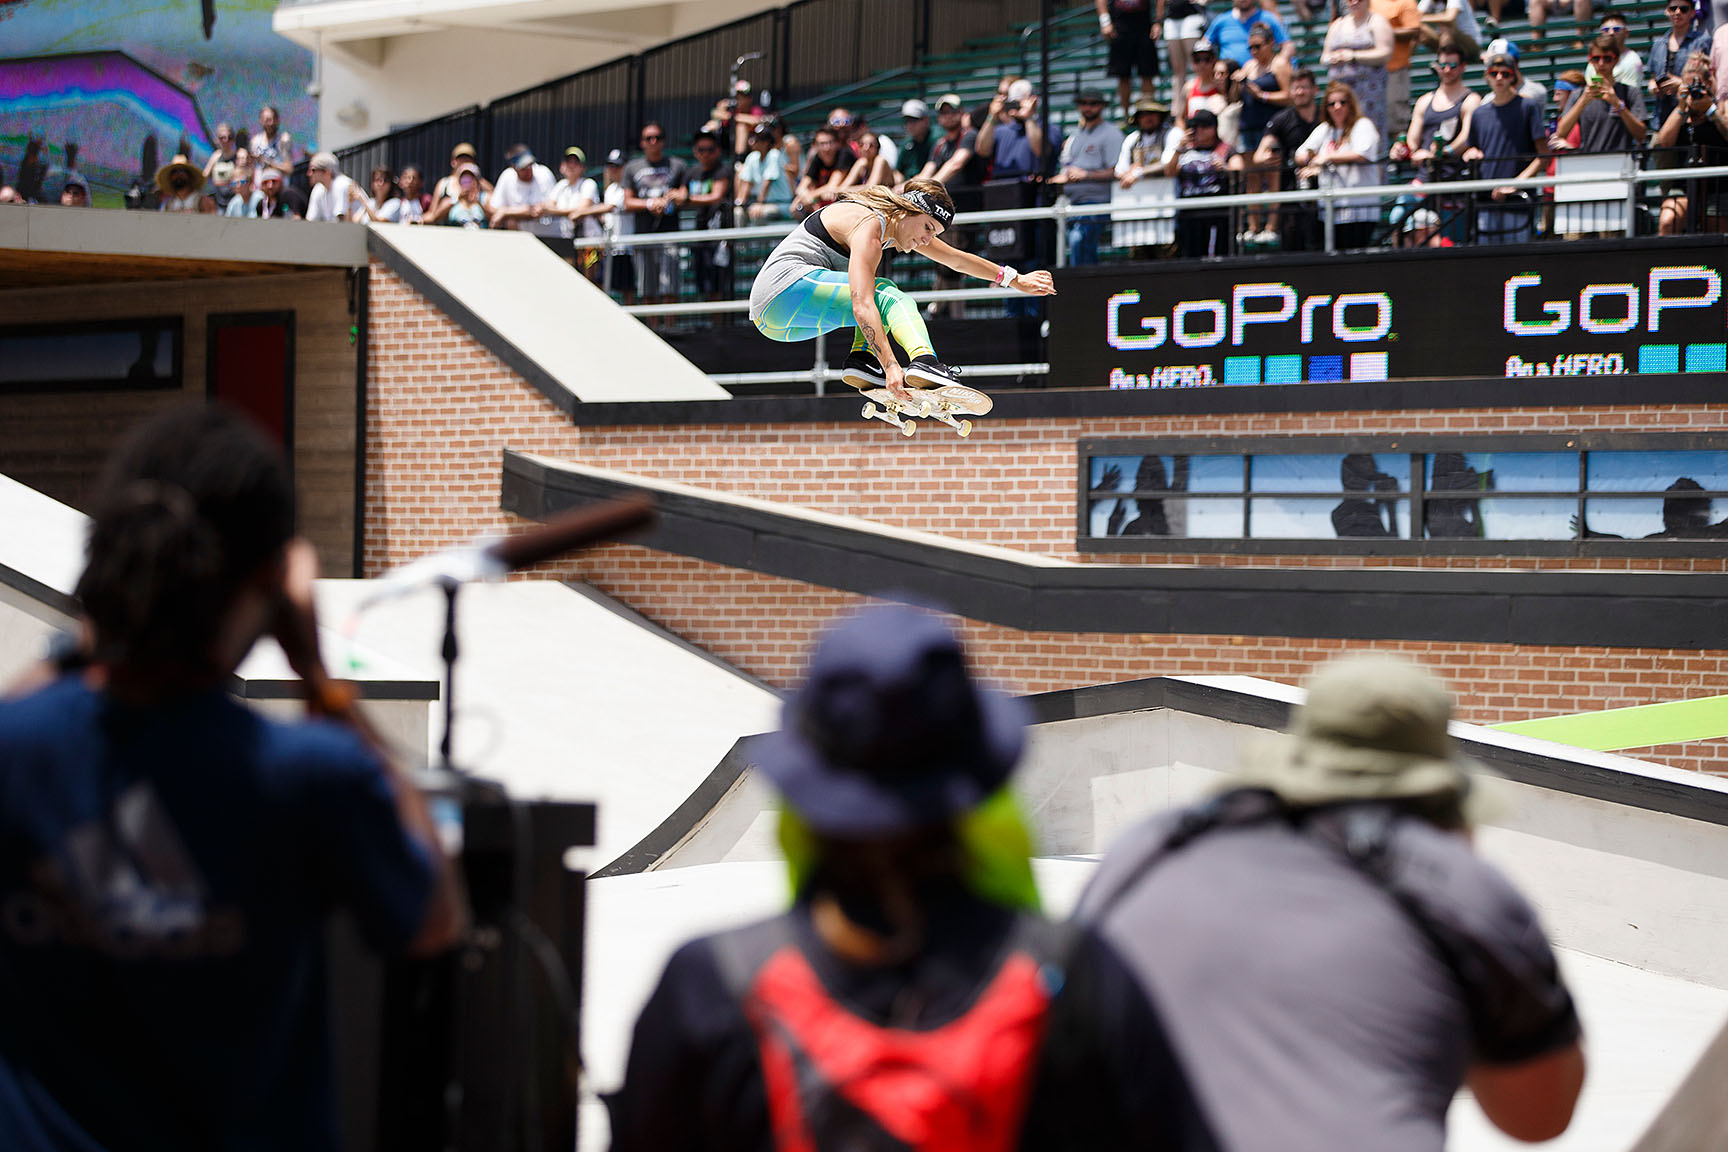 Women's Skateboard Street was contested on Saturday, and Leticia Bufoni was on hand to boost transfers. Though the former gold medalist was was held to fourth in the finals, Bufoni represented her home country of Brazil with style, smooth grinds and a dedicated fanbase.